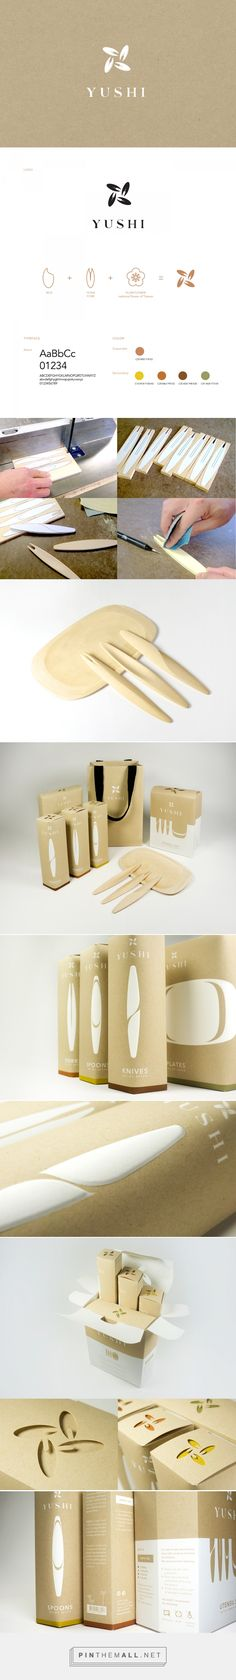 Packaging and branding for YUSHI on Behance by Ning Li New York, NY curated by Packaging Diva PD. Single-use, biodegradable tableware made from tree-free renewable and fully biodegradable materials.